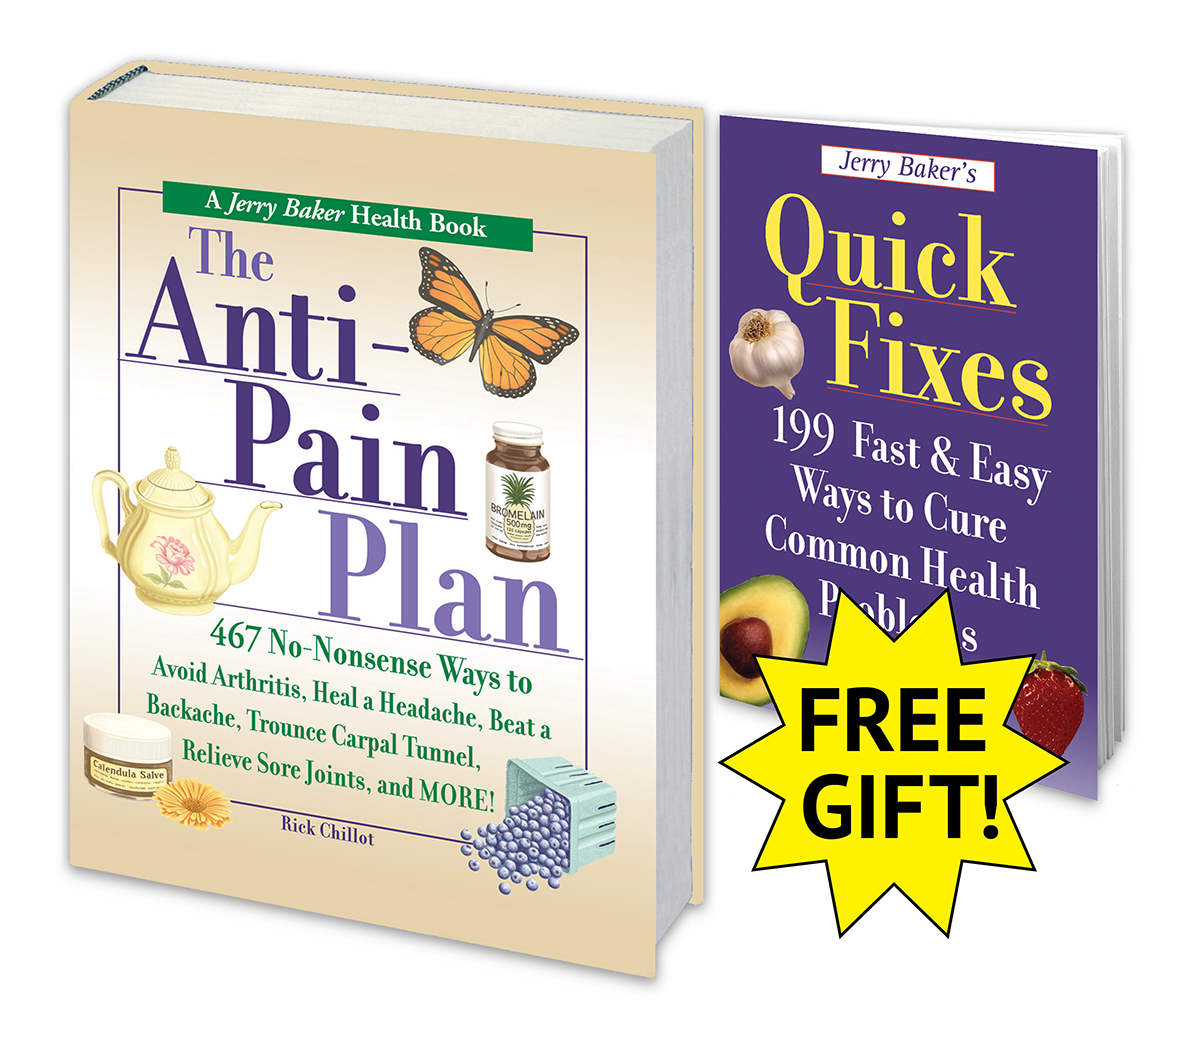 The Anti-Pain Plan